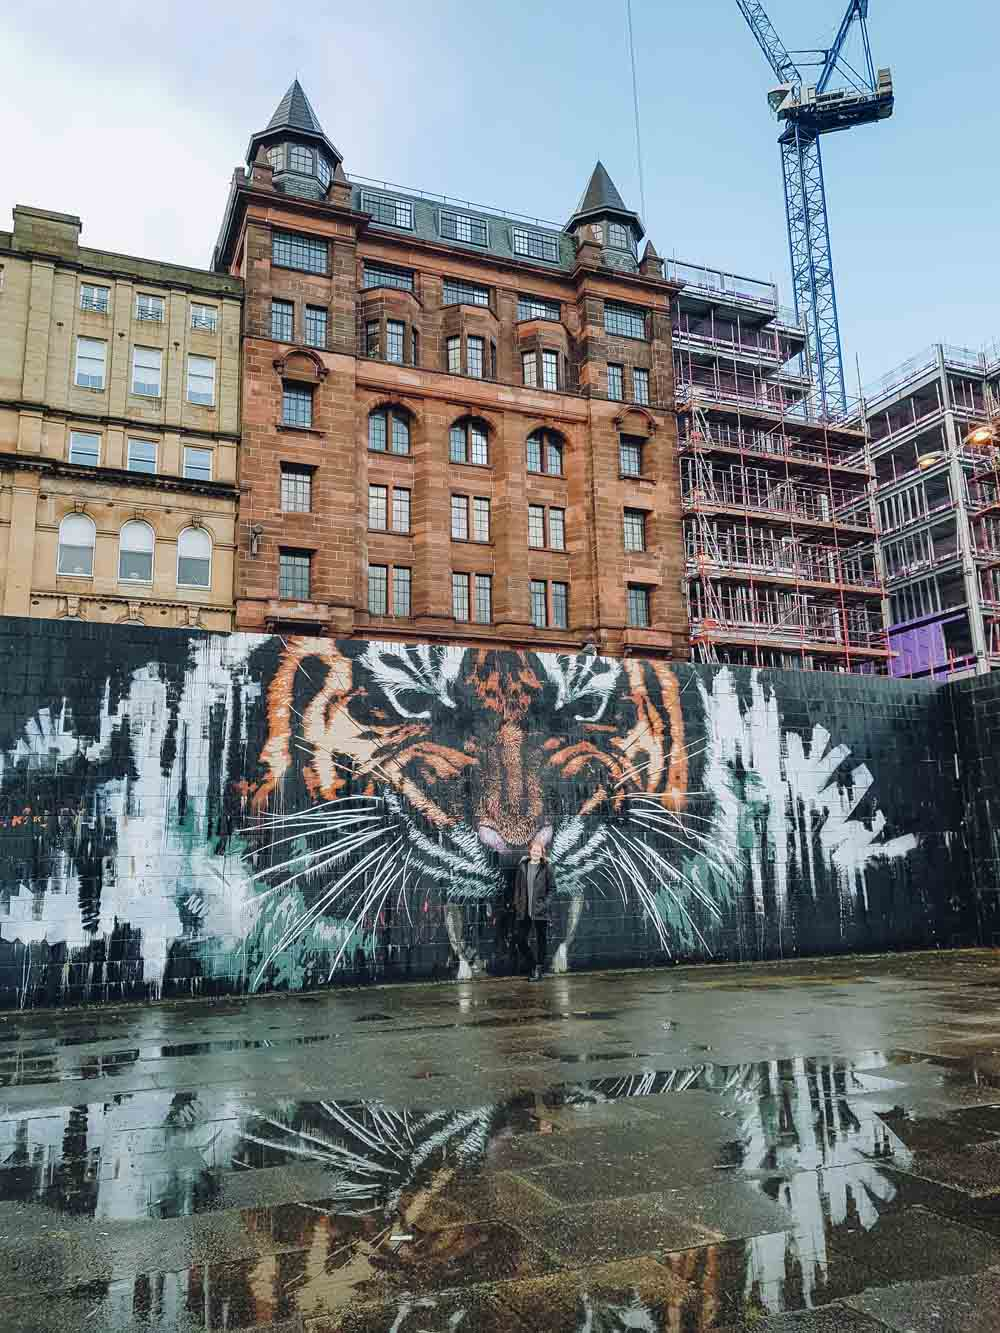 Glasgow's Tiger, Custom House Quay, Glasgow - Map of Joy